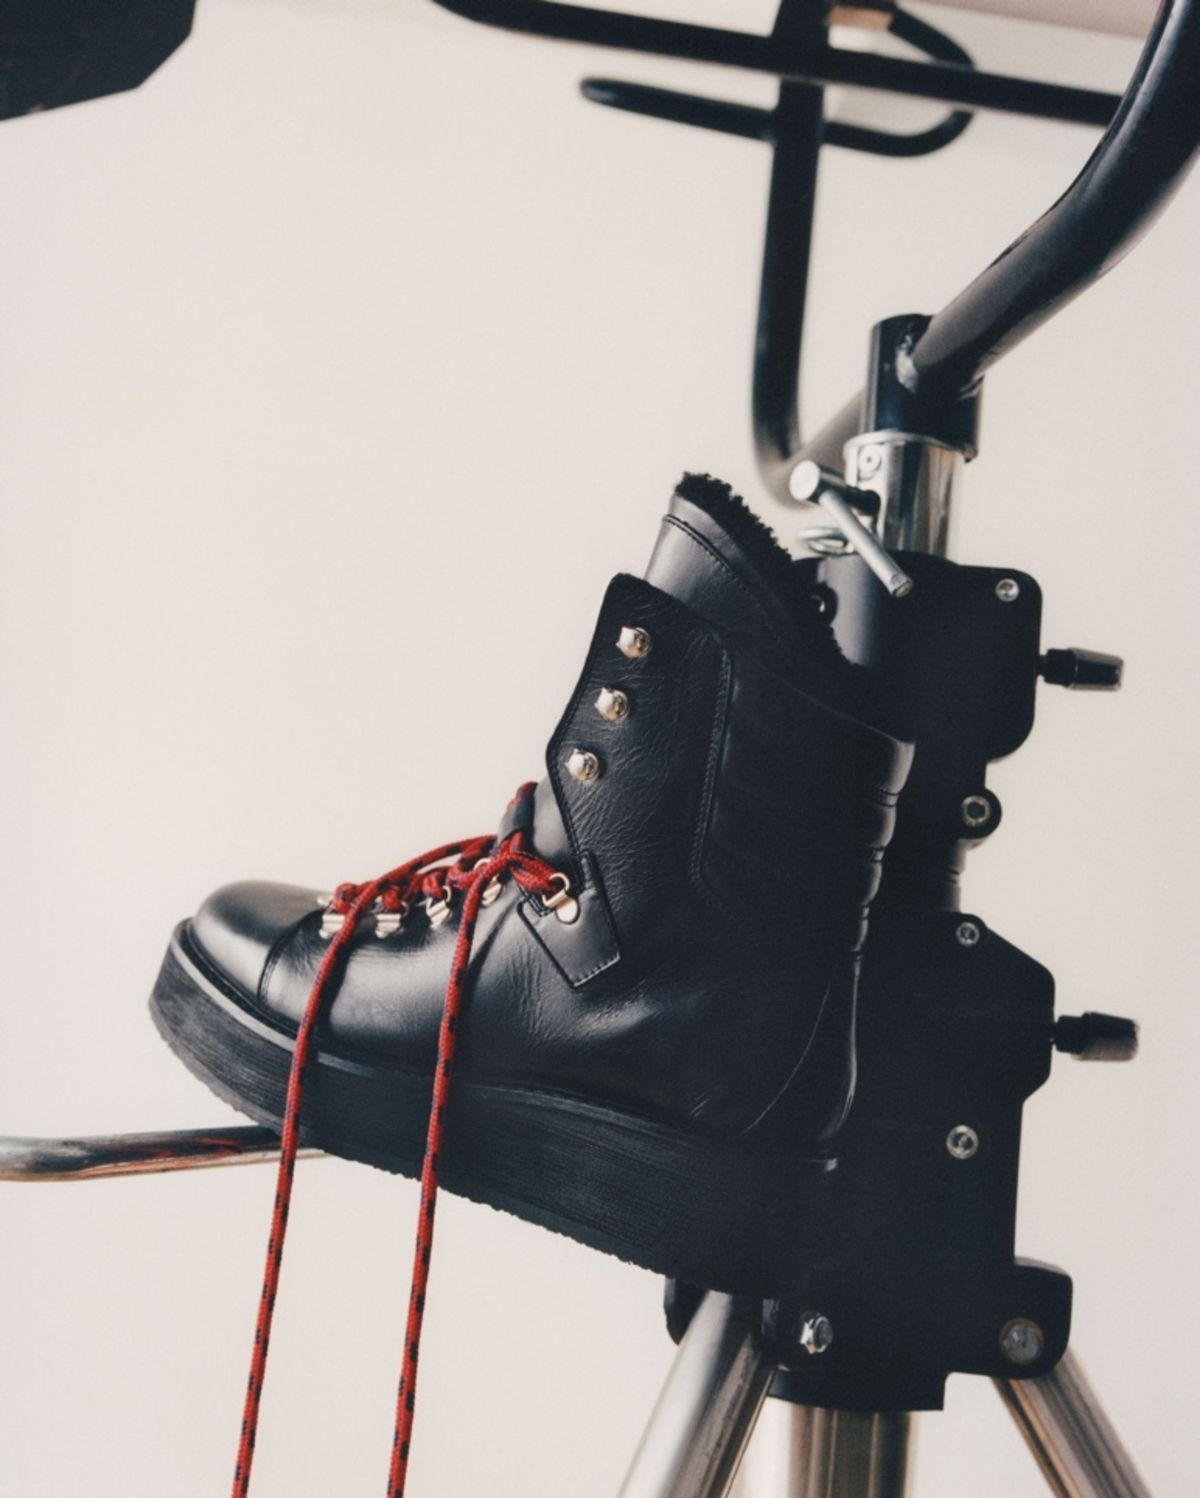 Shot taken in a studio of a pair of black leather boots with red laces and black fur on the inside.